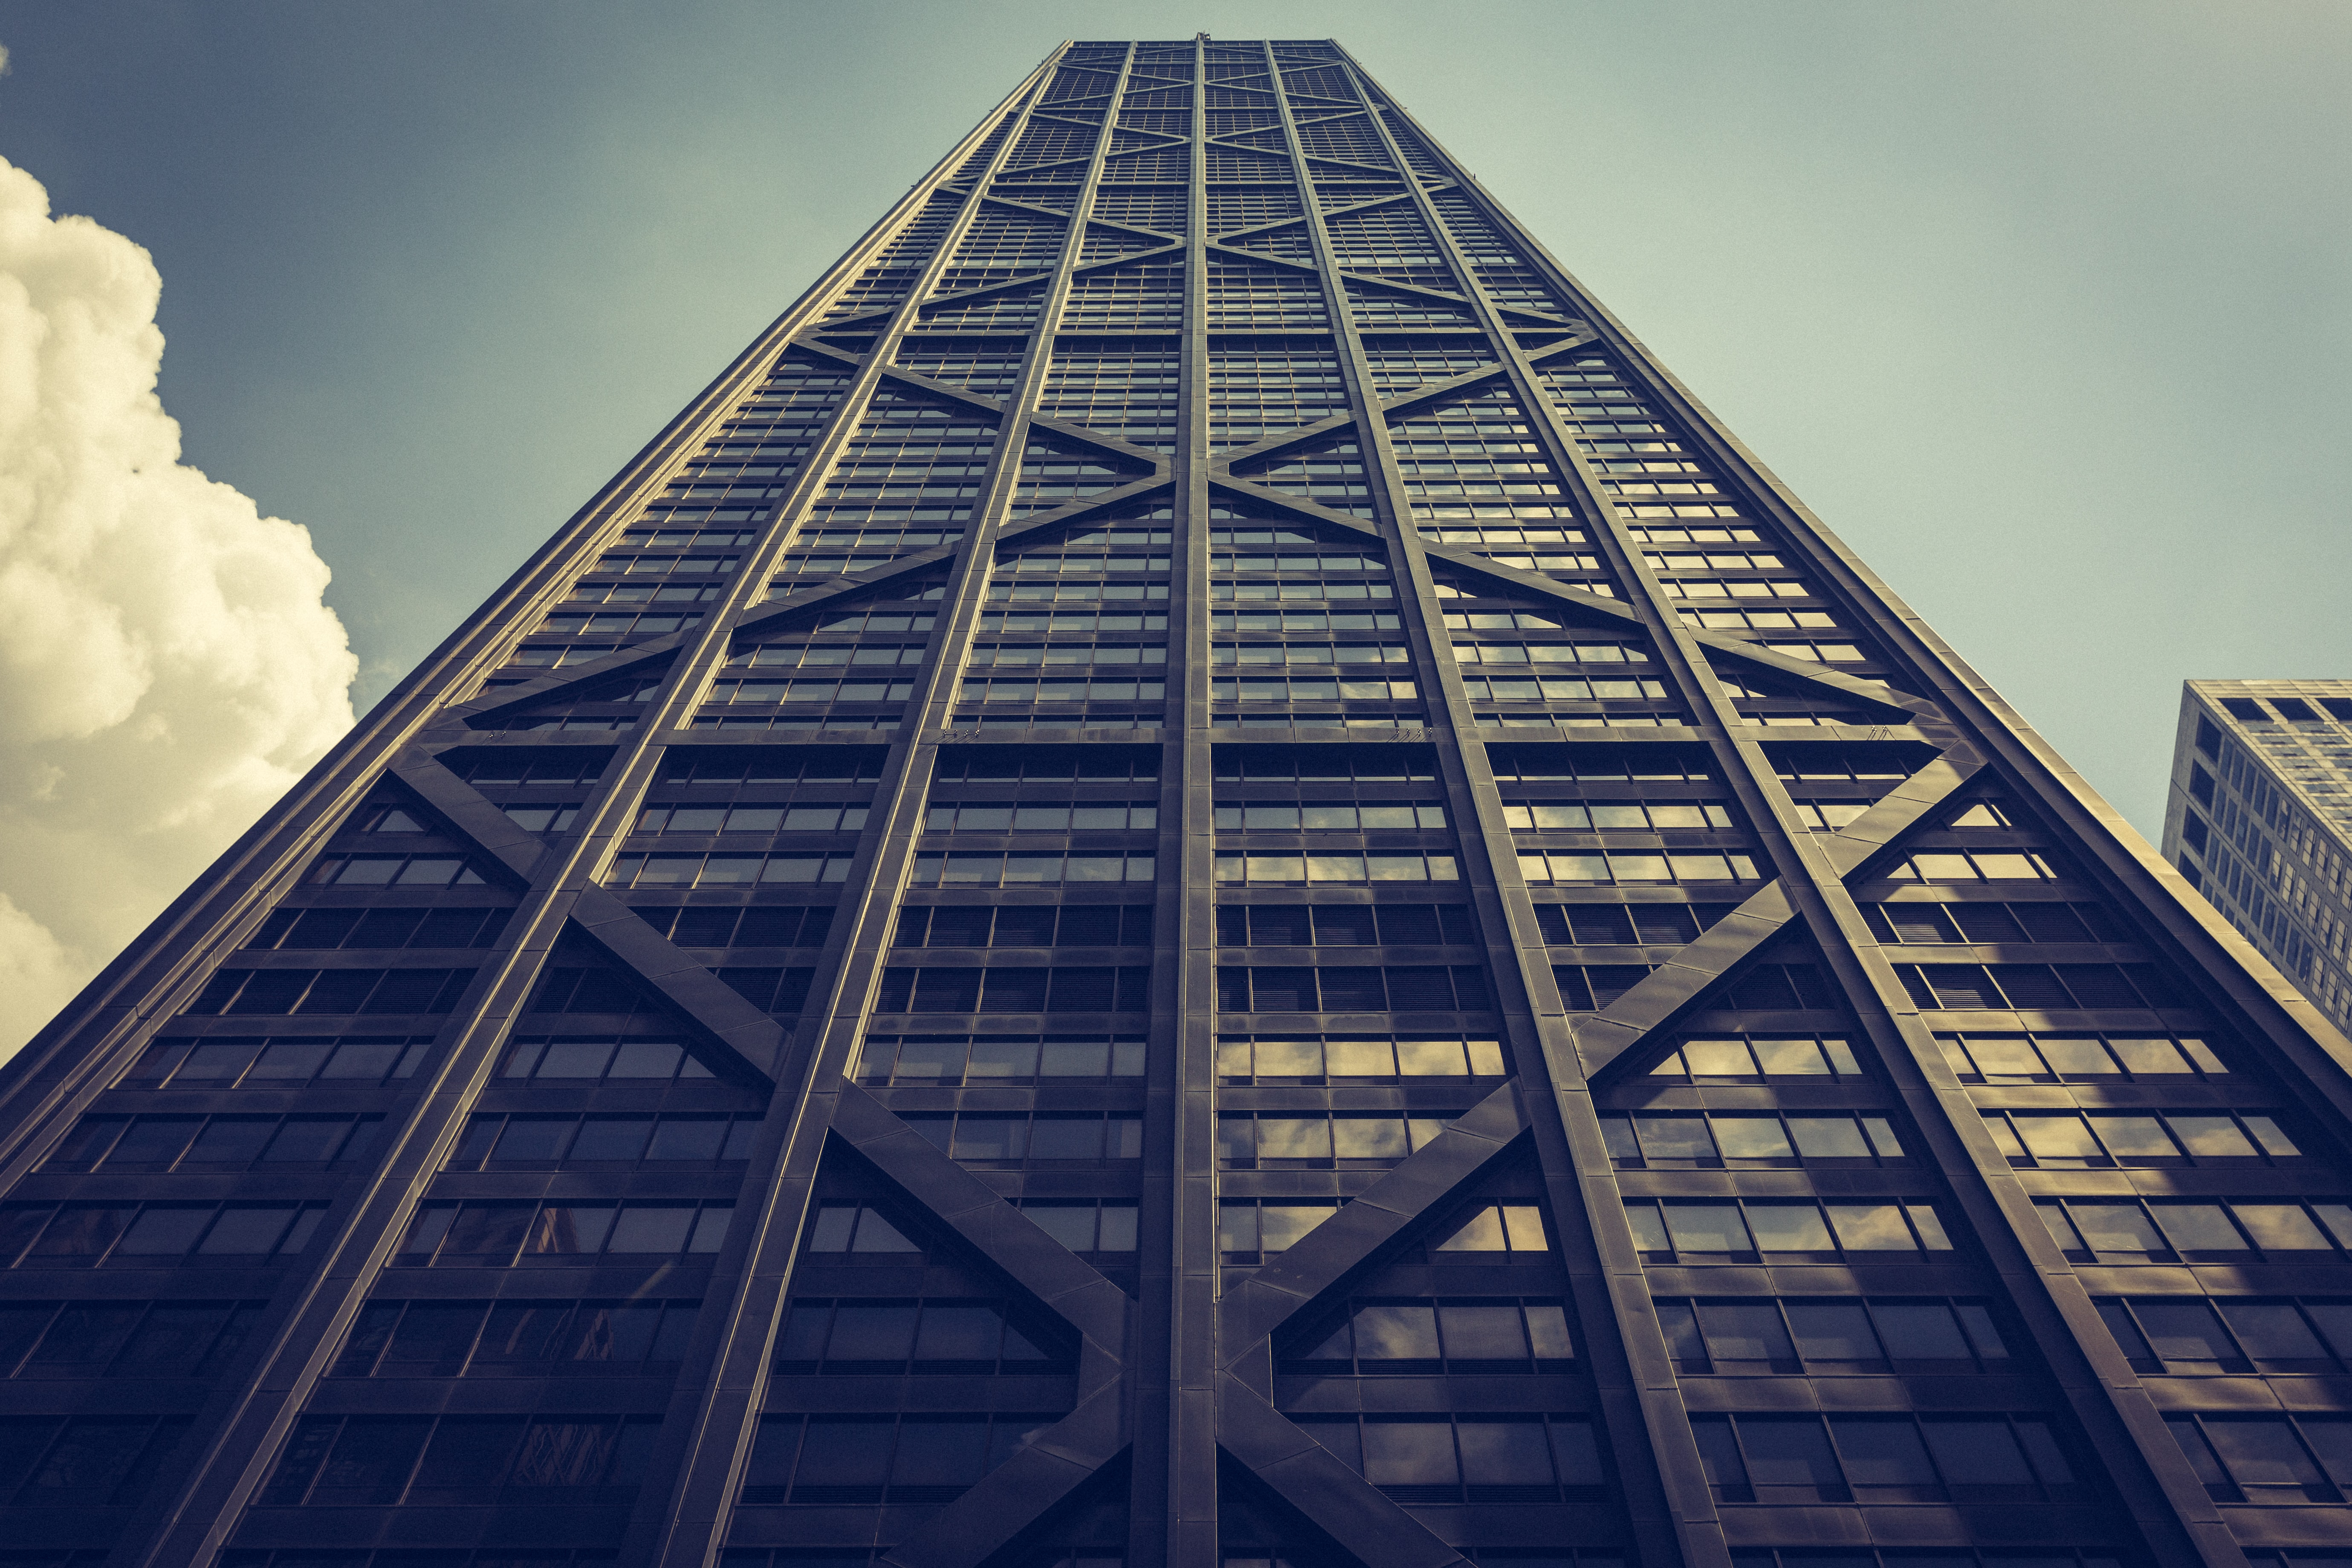 Looking up at a tall dark skyscraper with windows and diagonal and vertical lines